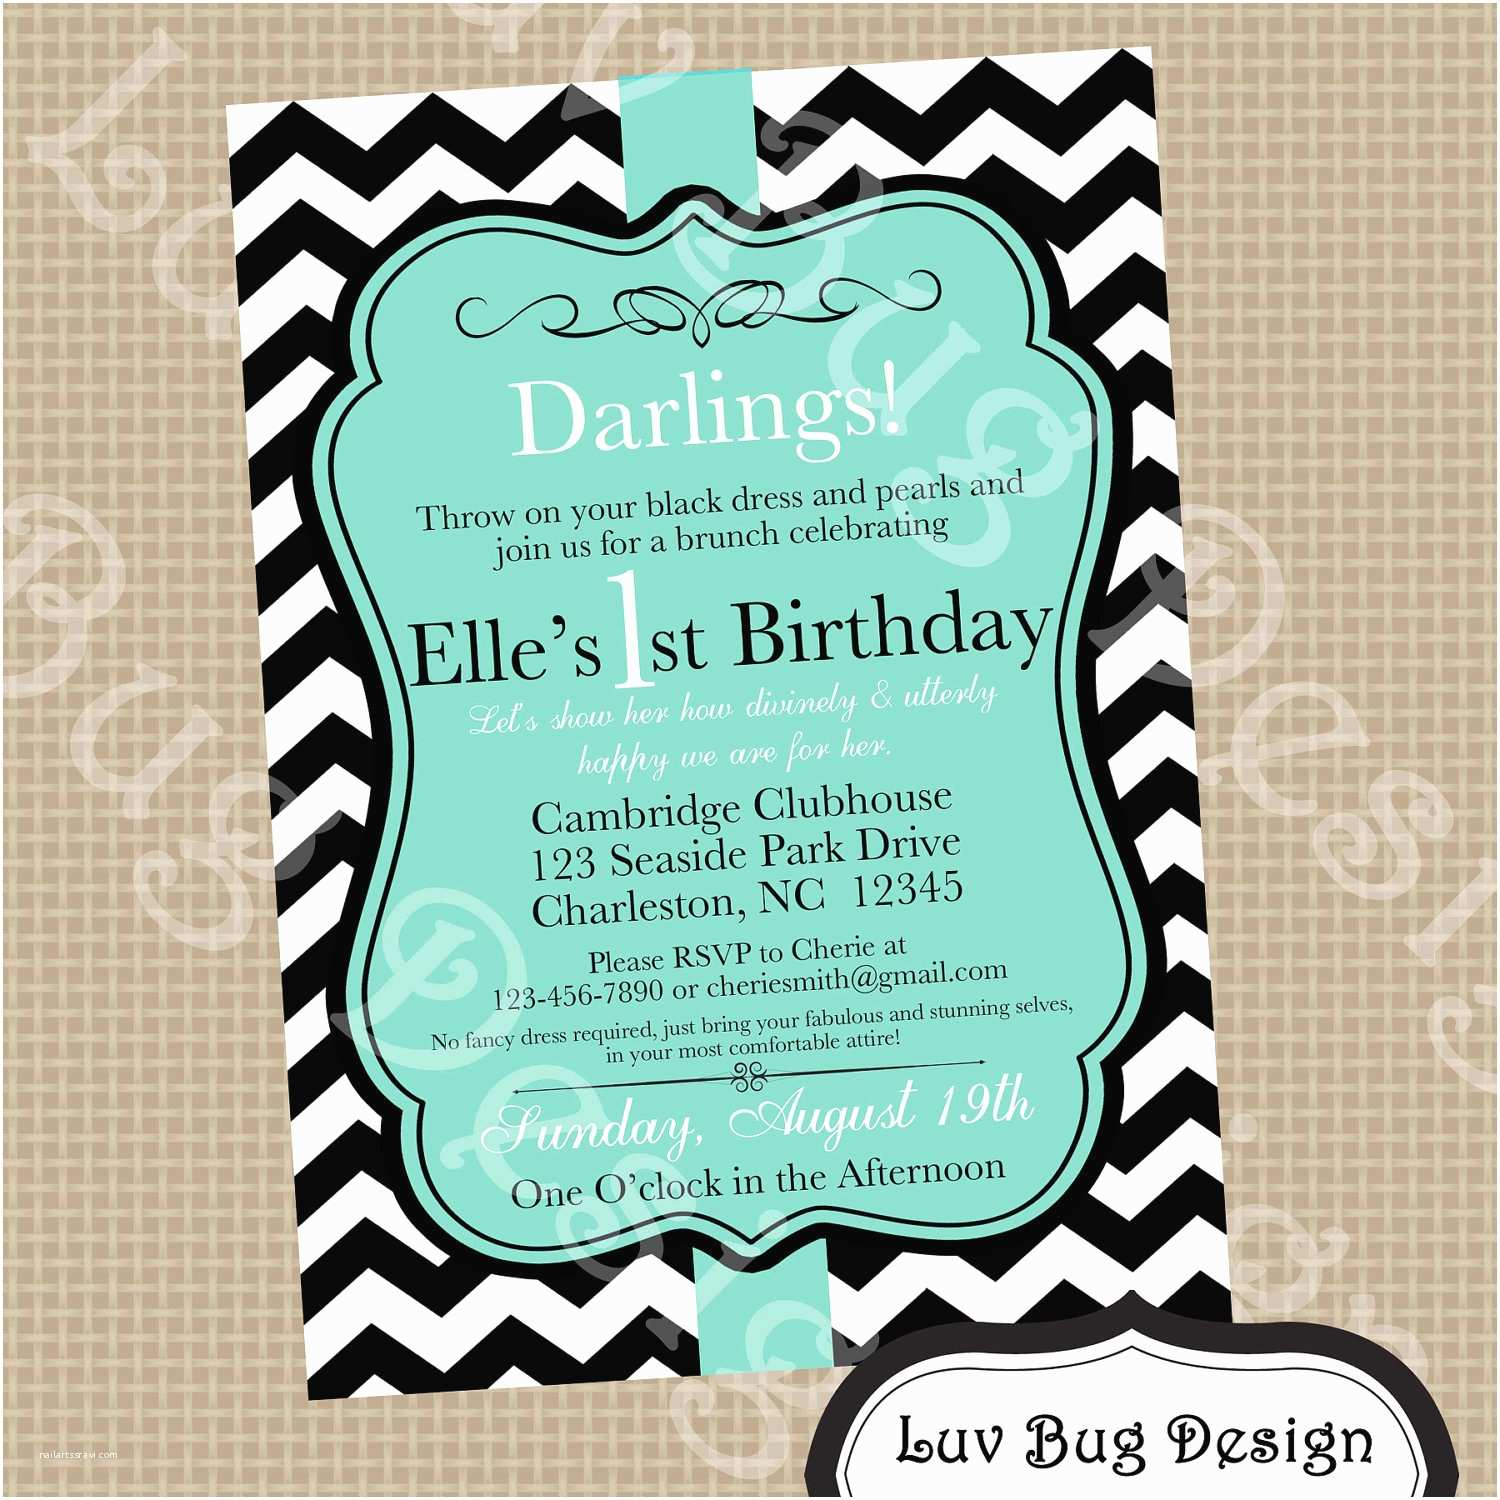 Design Party Invitations Dinner Party Invitation Template